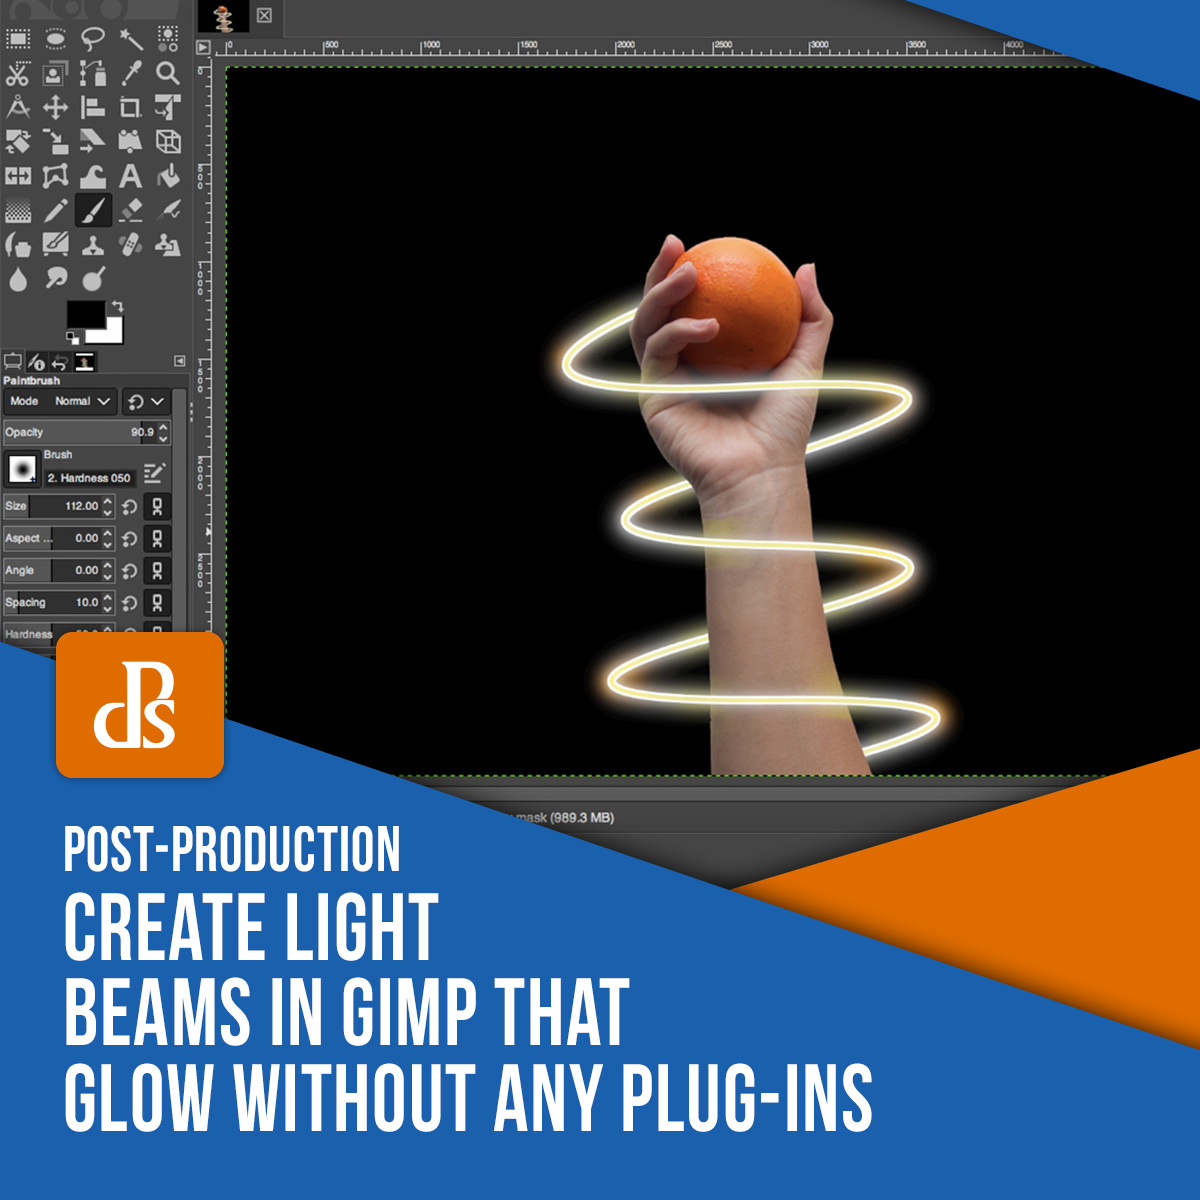 Create Light Beams in GIMP that Glow Without Any Plug-ins